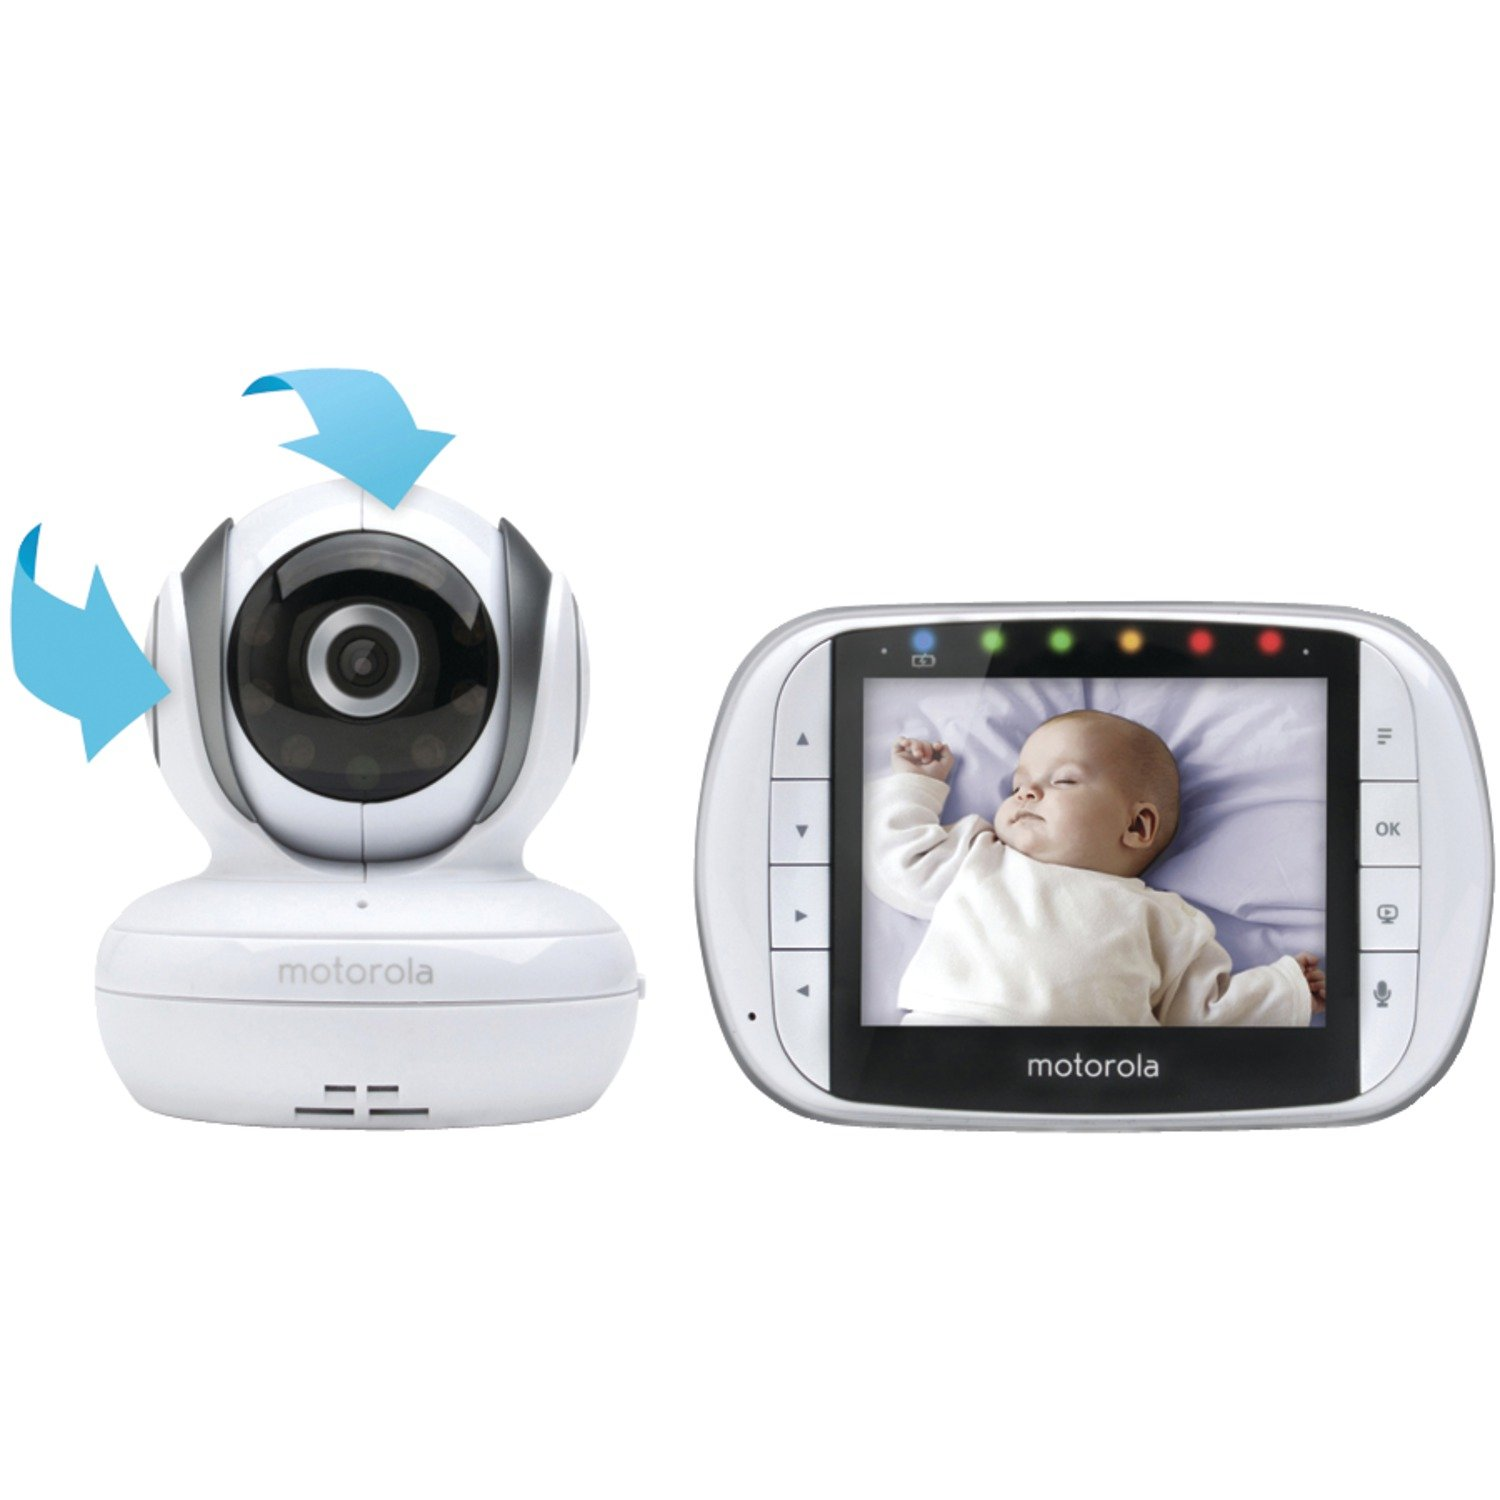 amazoncom motorola mbp36s remote wireless video baby monitor with 35 inch color lcd screen remote camera pan tilt and zoom baby - Baby Room Monitors